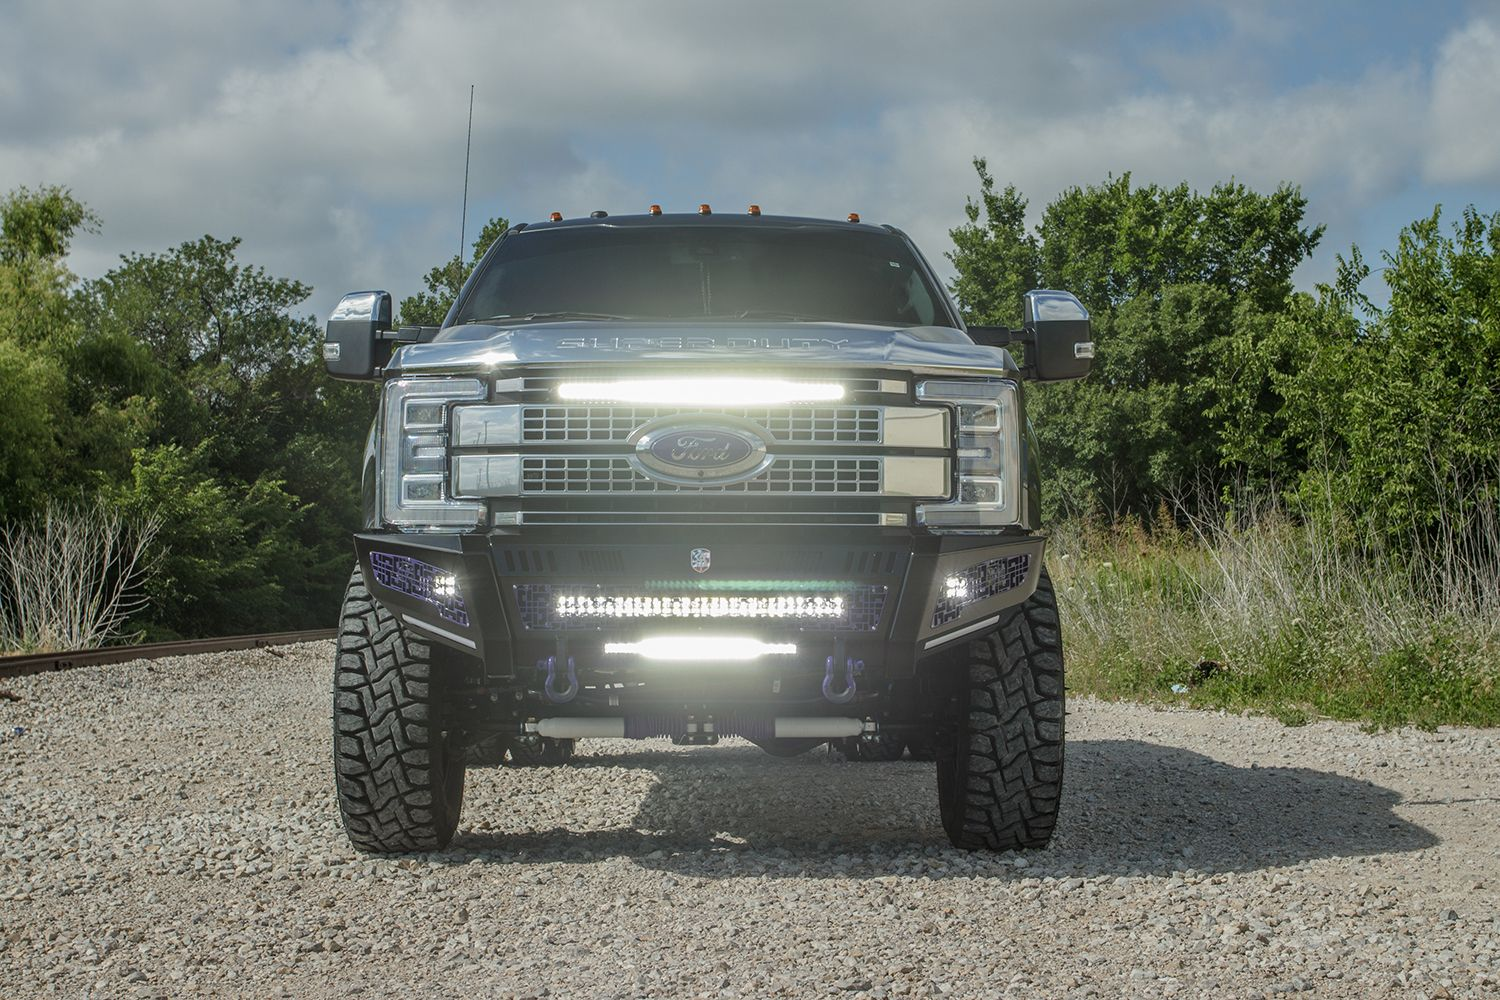 small resolution of road armor identity bumpers on a lifted gray ford f350 dually with custom rigid led light bars